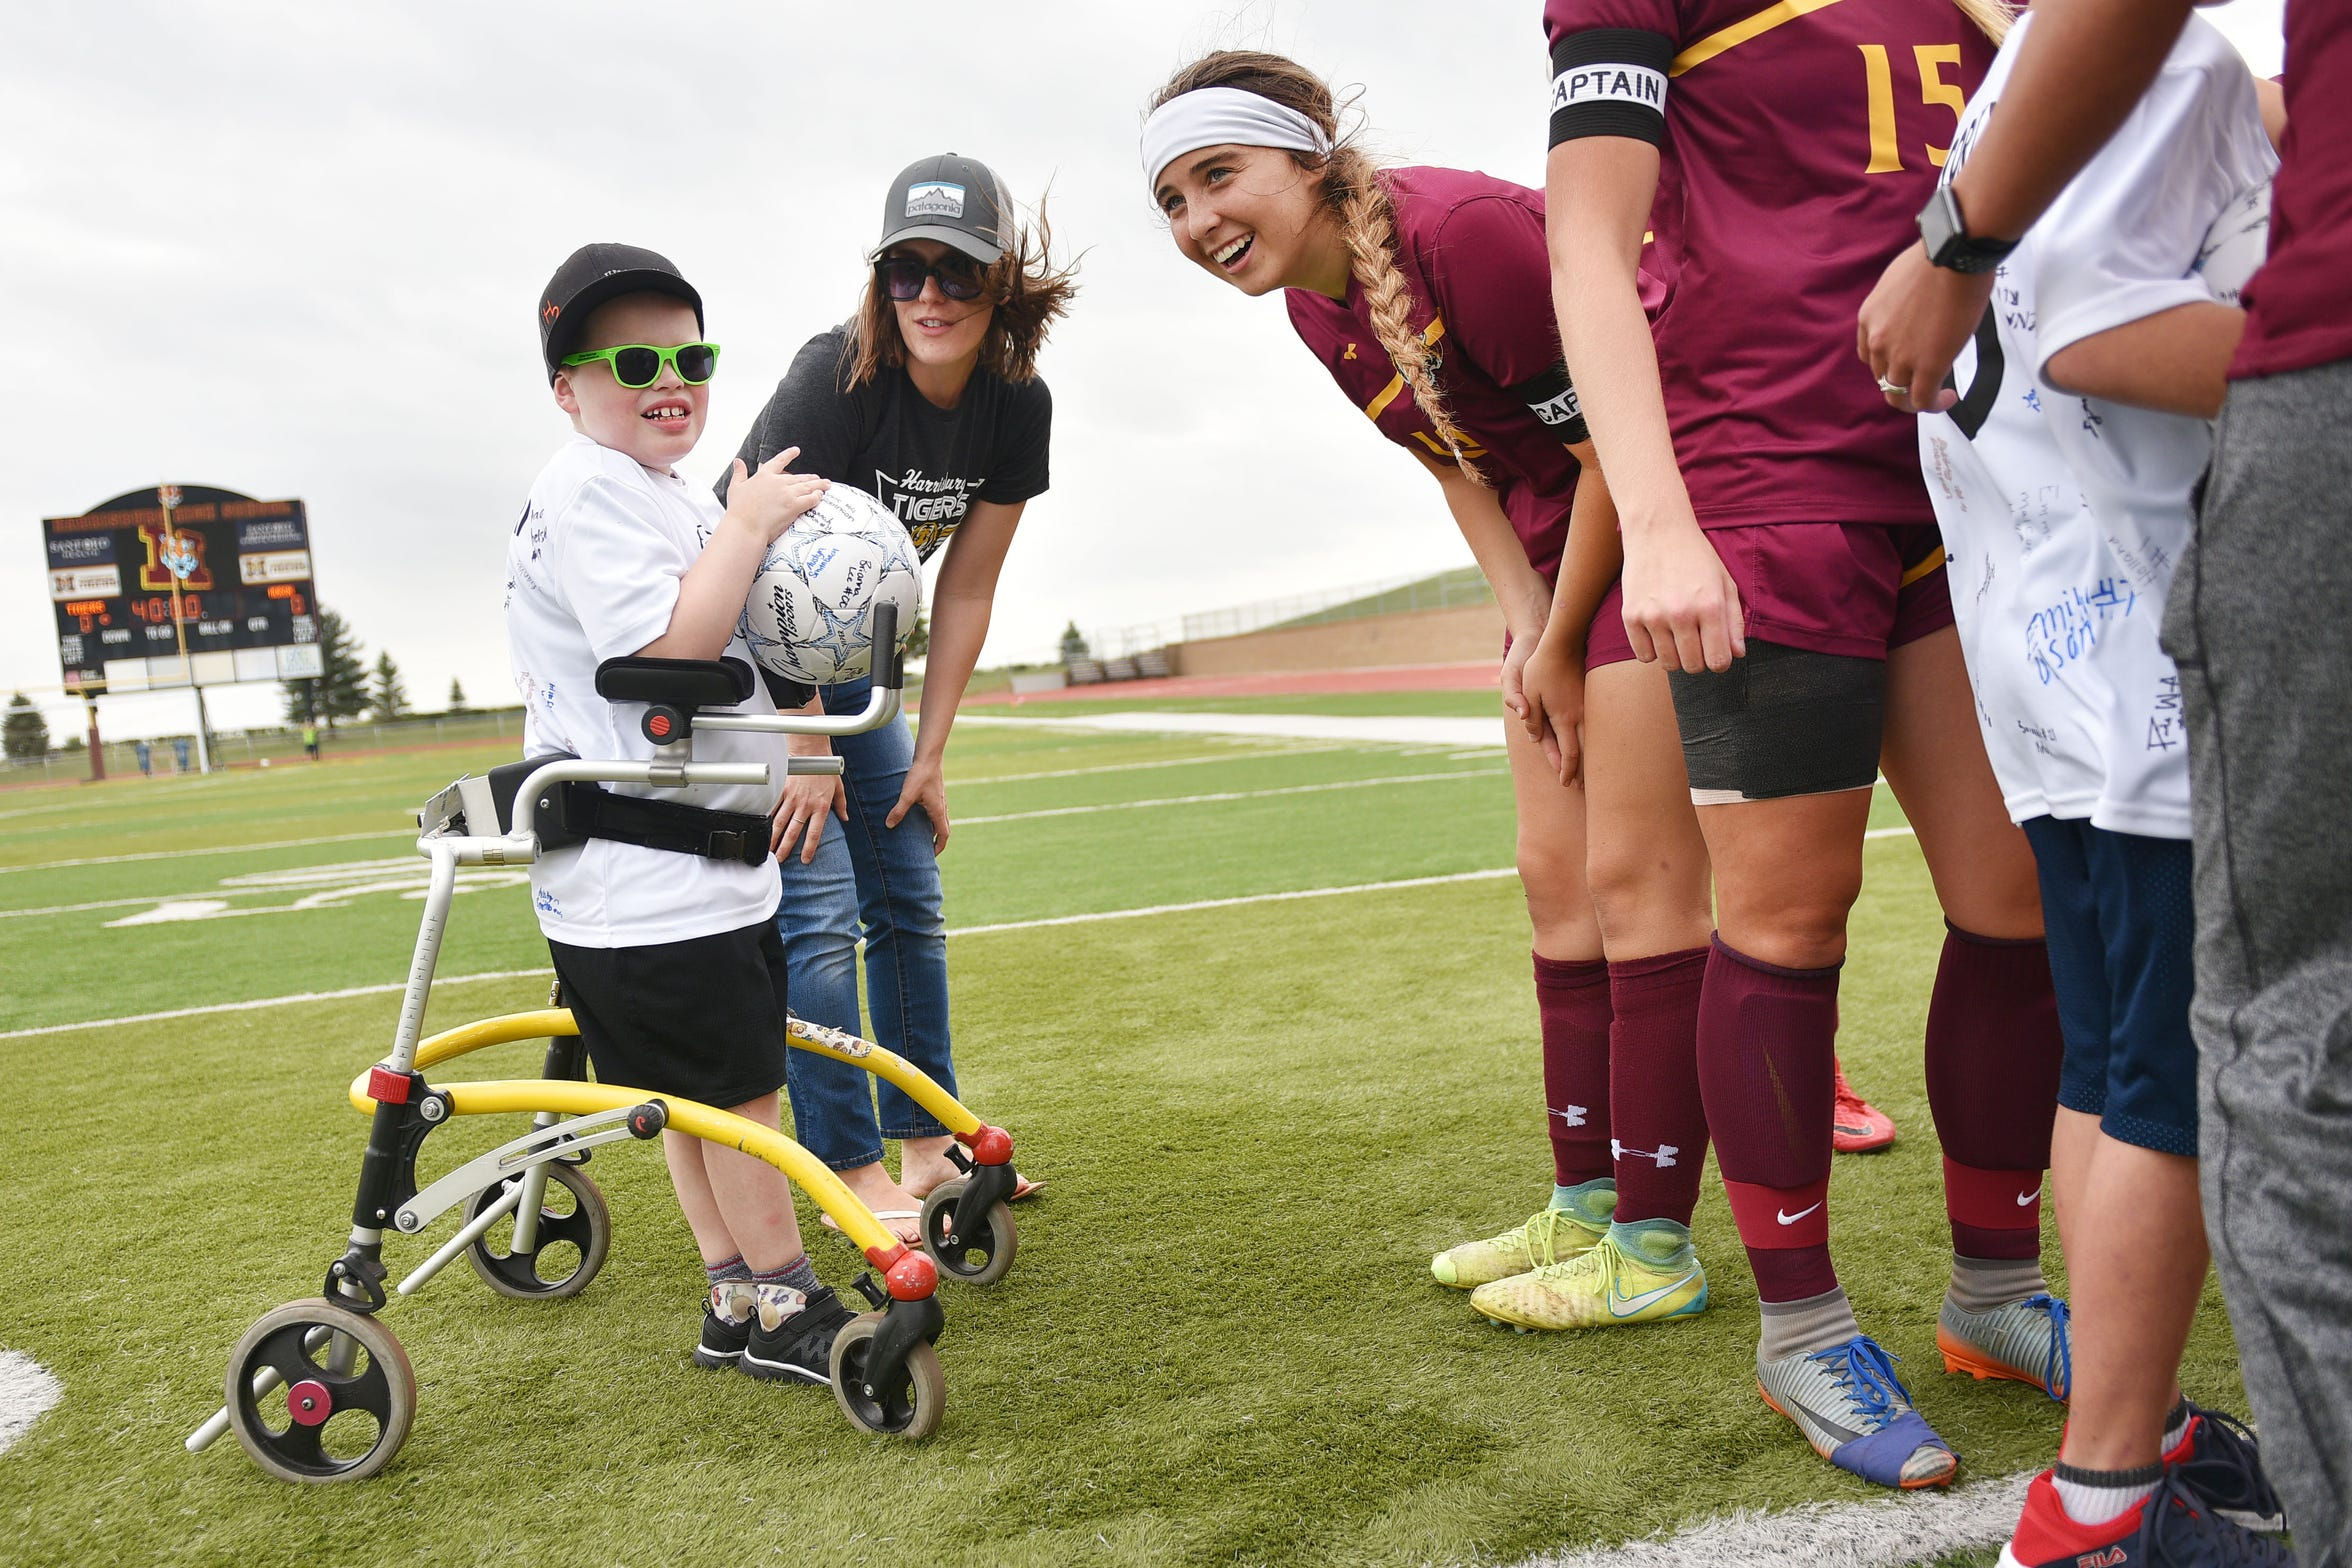 Kate Hamilton talks to her son Grant on the field with Harrisburg player Lily Petersen before the Harrisburg vs Hurron game Thursday, Sept. 13, at Harrisburg. Grant Hamilton and Corey Surikov were named Players of the Game.